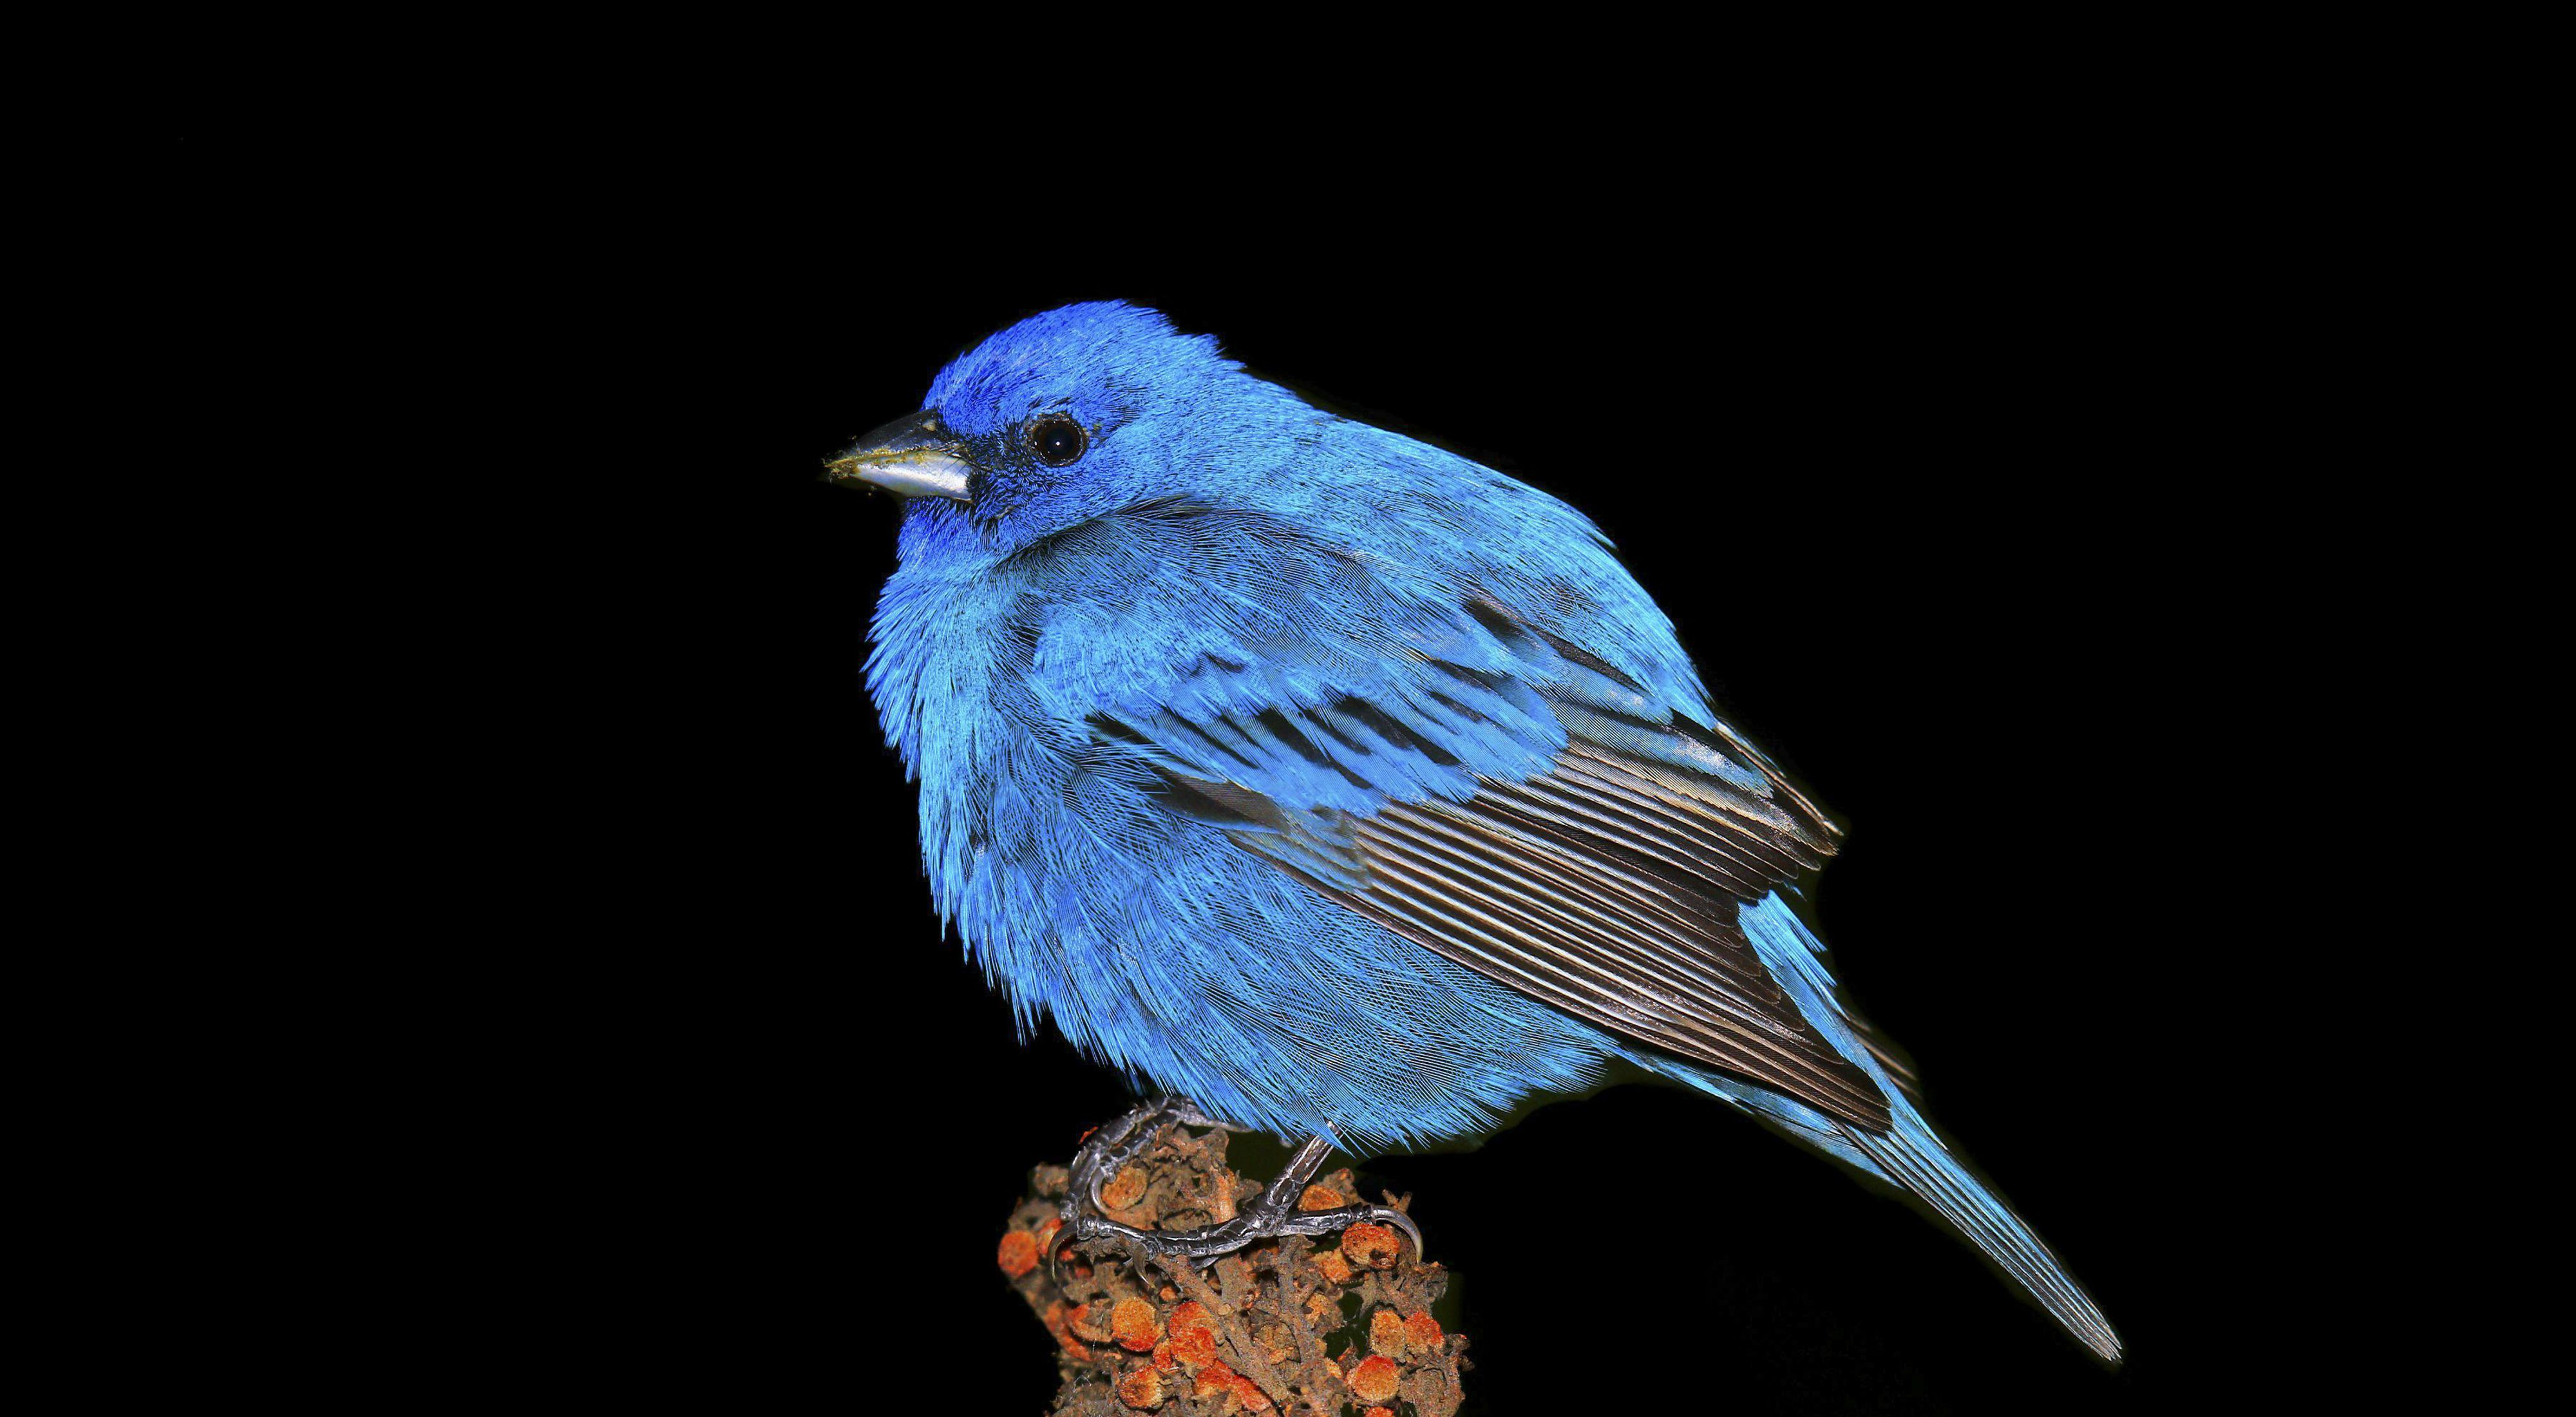 An Indigo Bunting perches on a weed with its feathers ruffled up in Lemont, Illinois, on May 20, 2015.